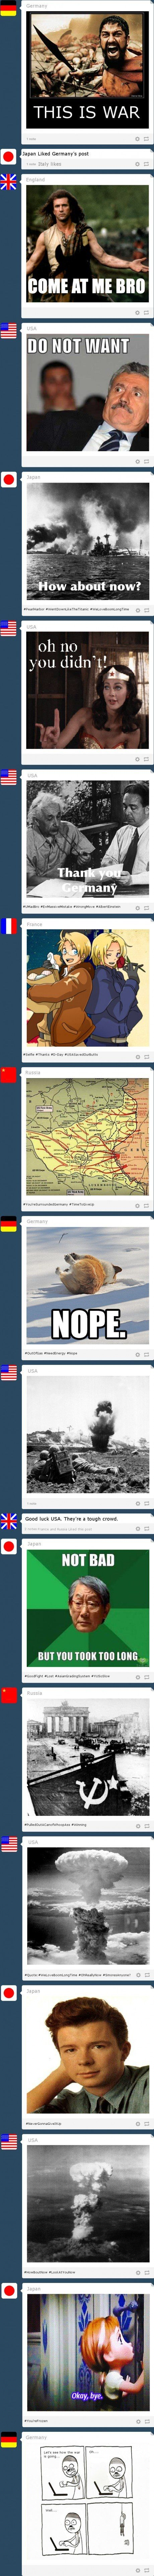 If world war two was just a fight on tumblr